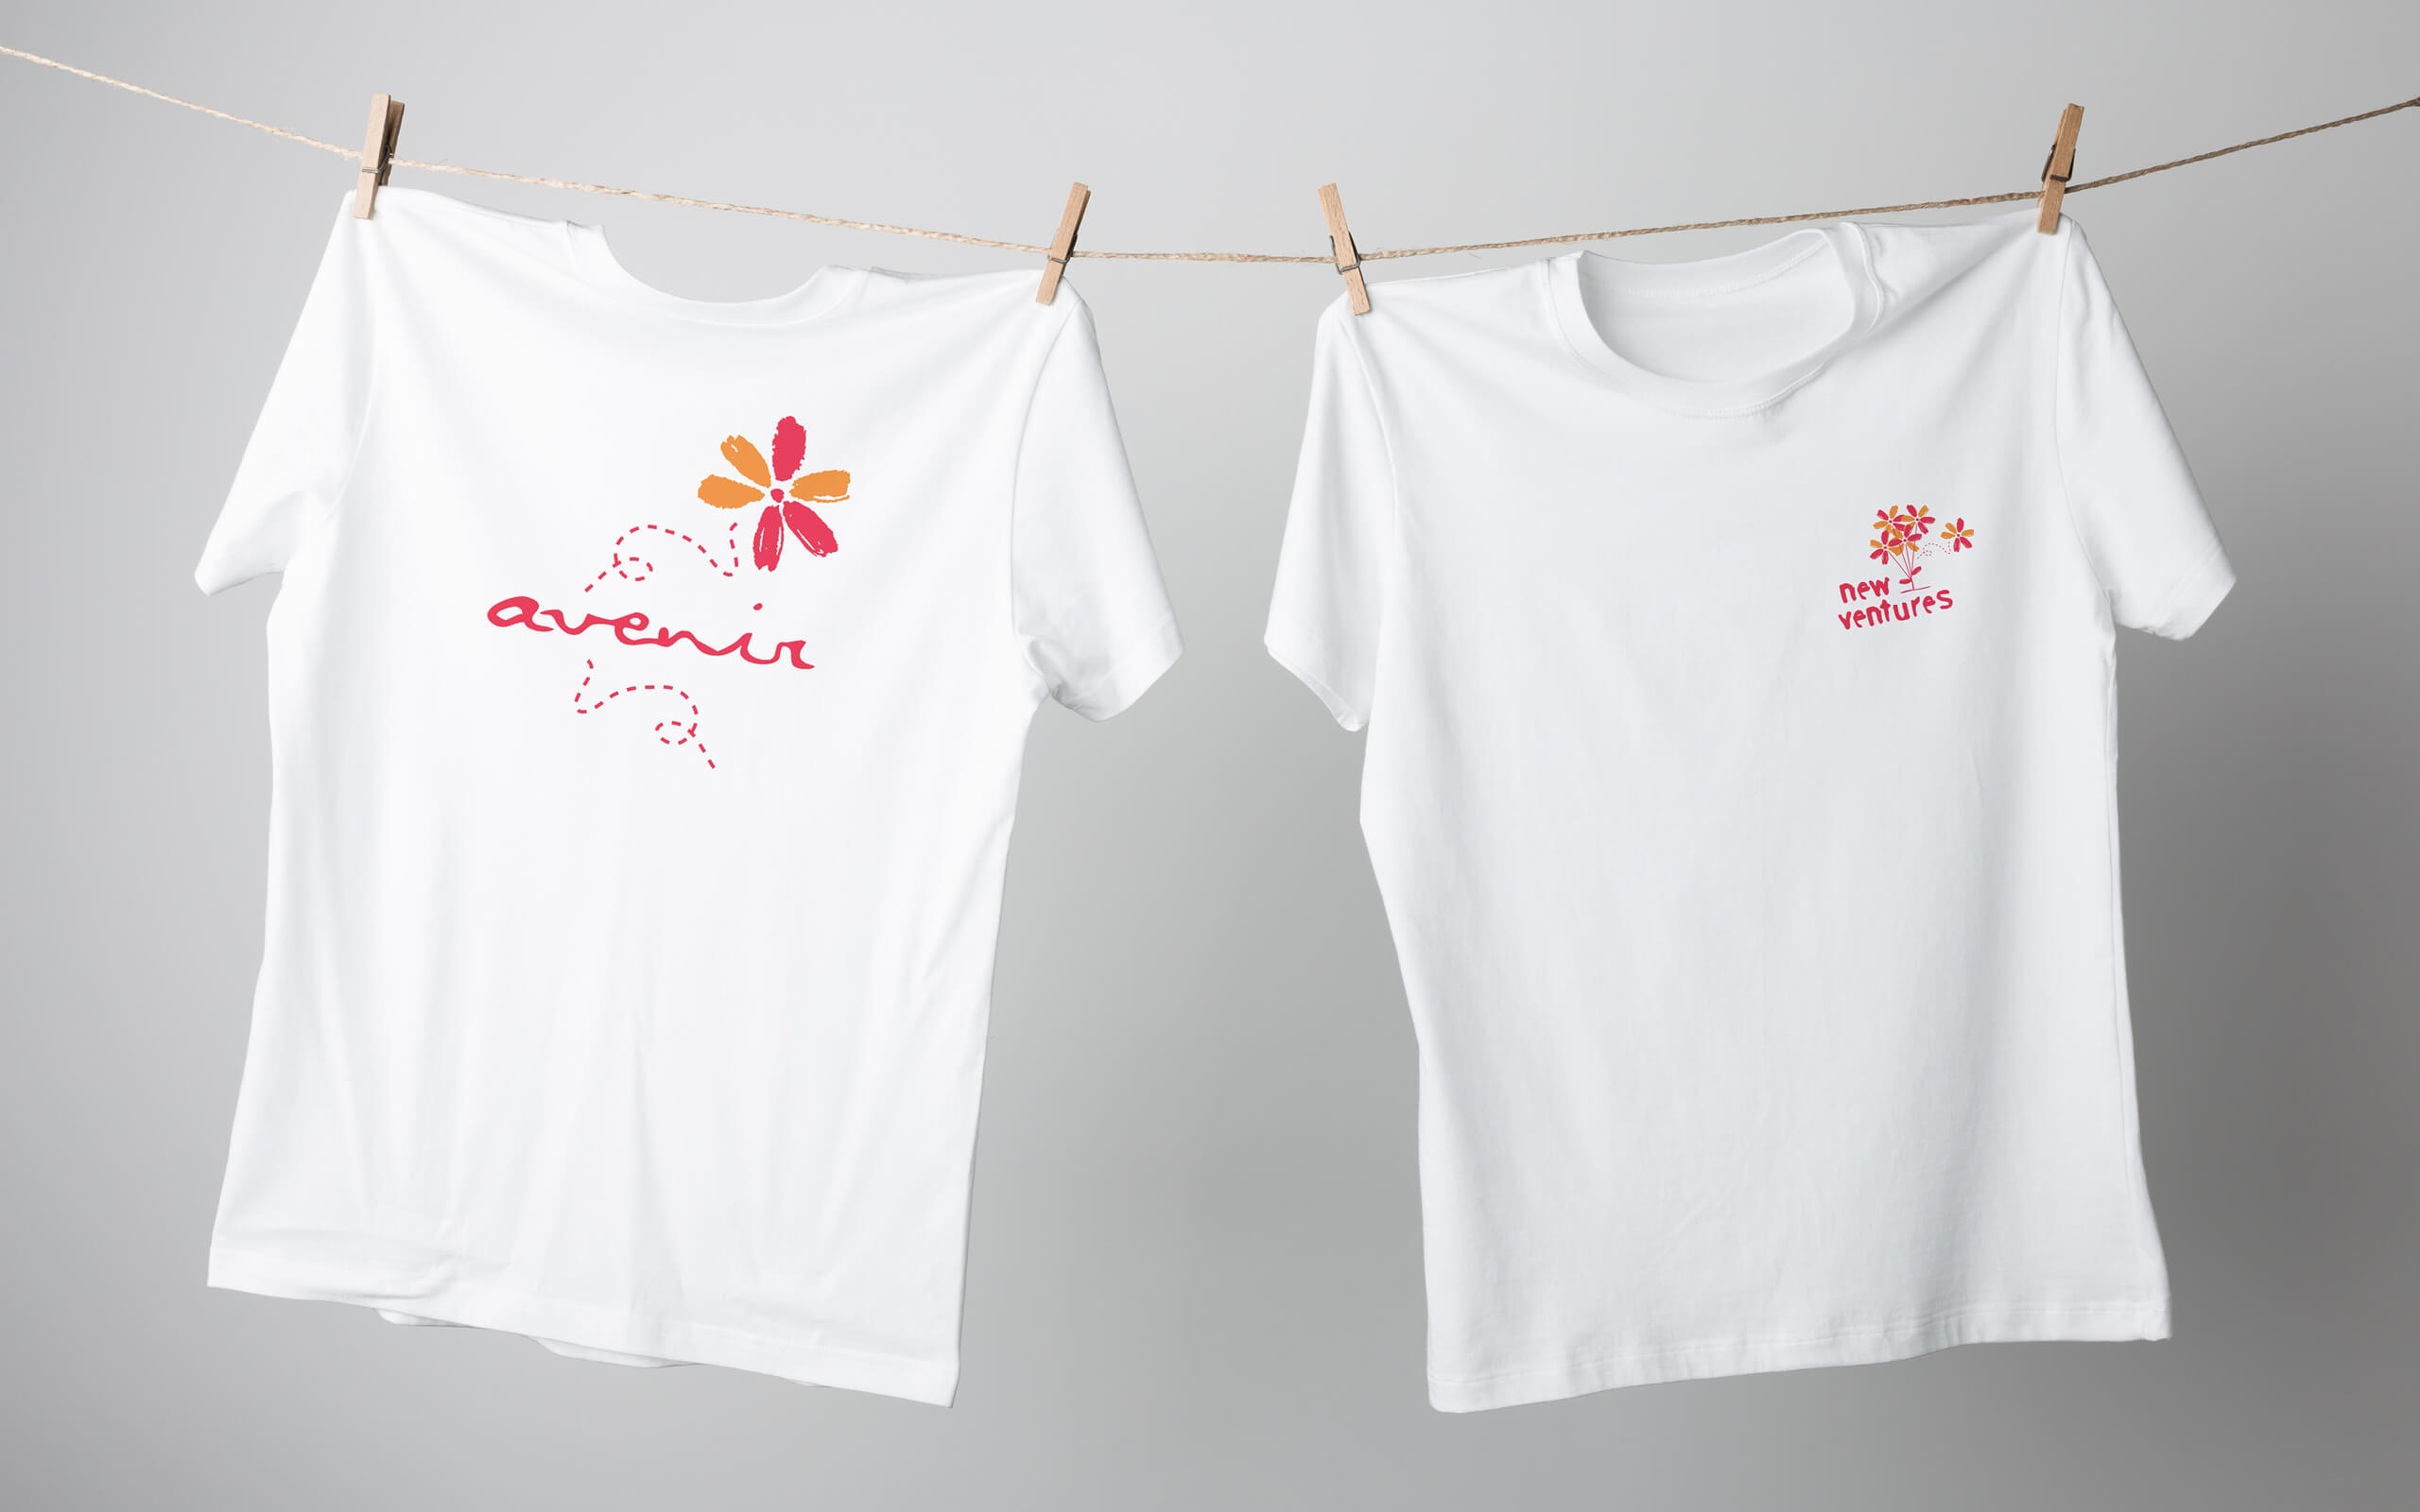 yoplait new ventures t-shirts image